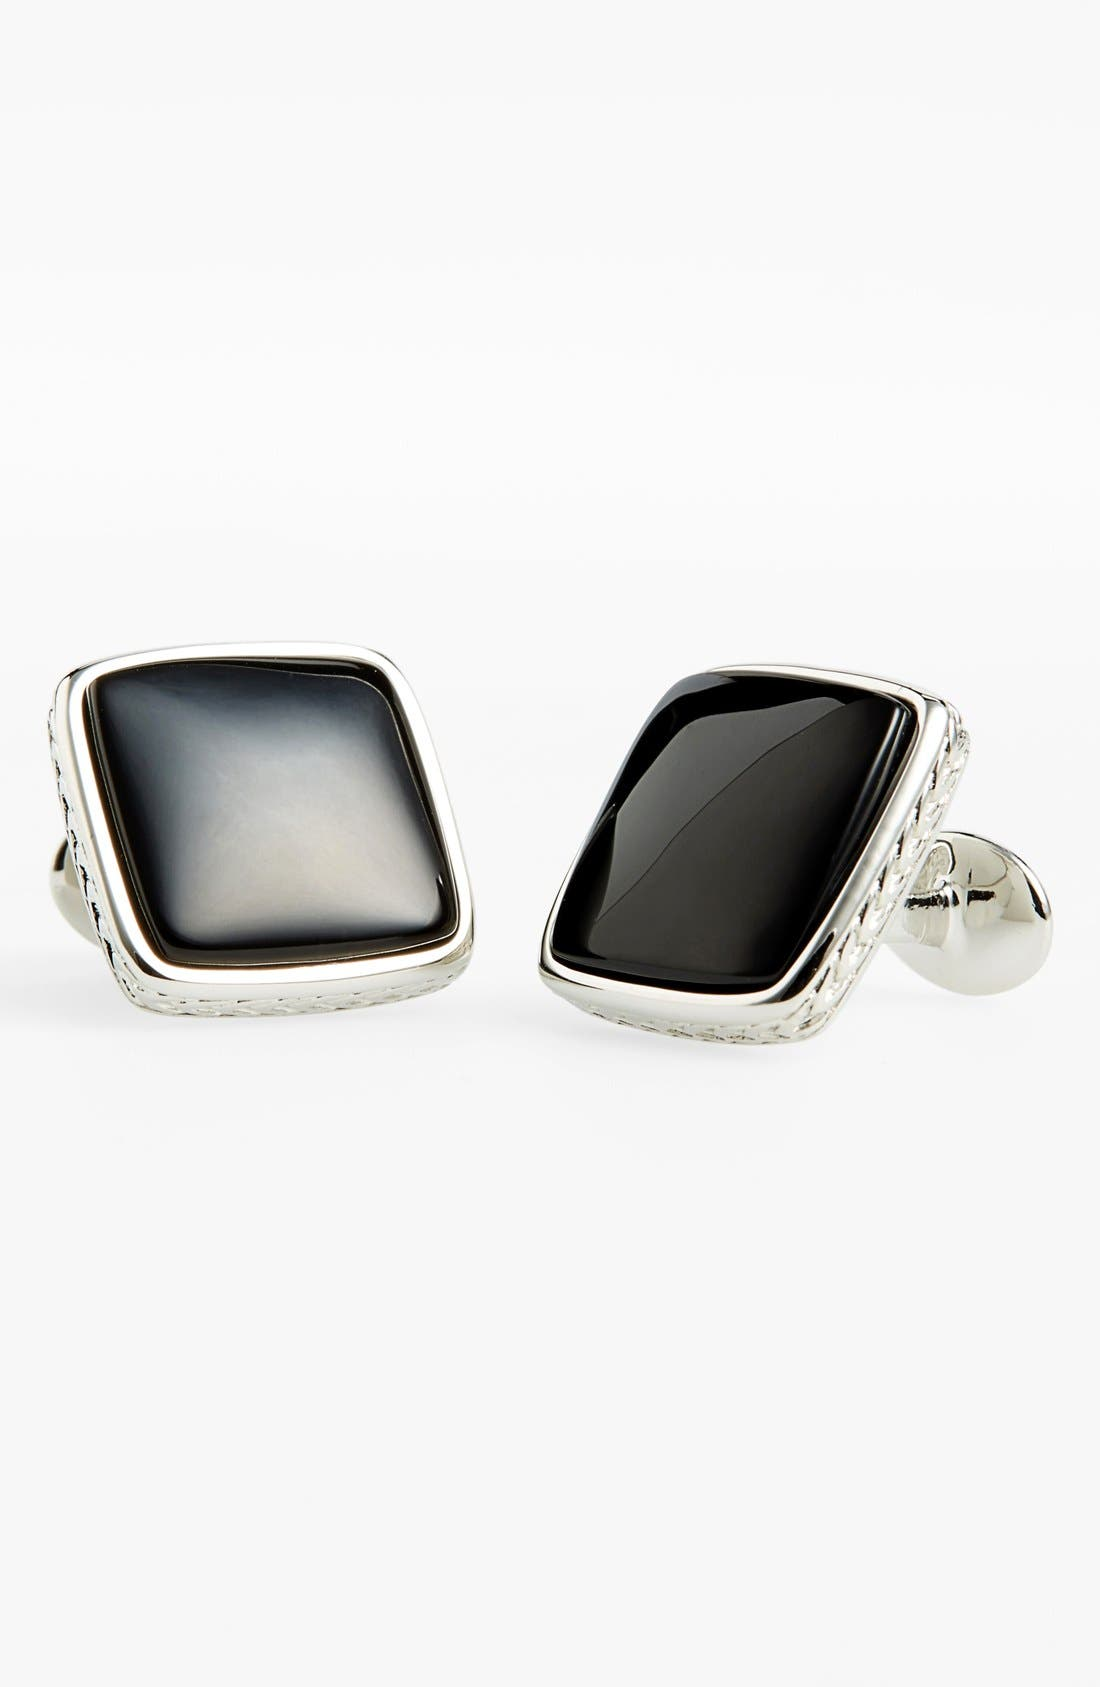 Onyx Cuff Links,                             Main thumbnail 1, color,                             Sterling Silver/ Onyx